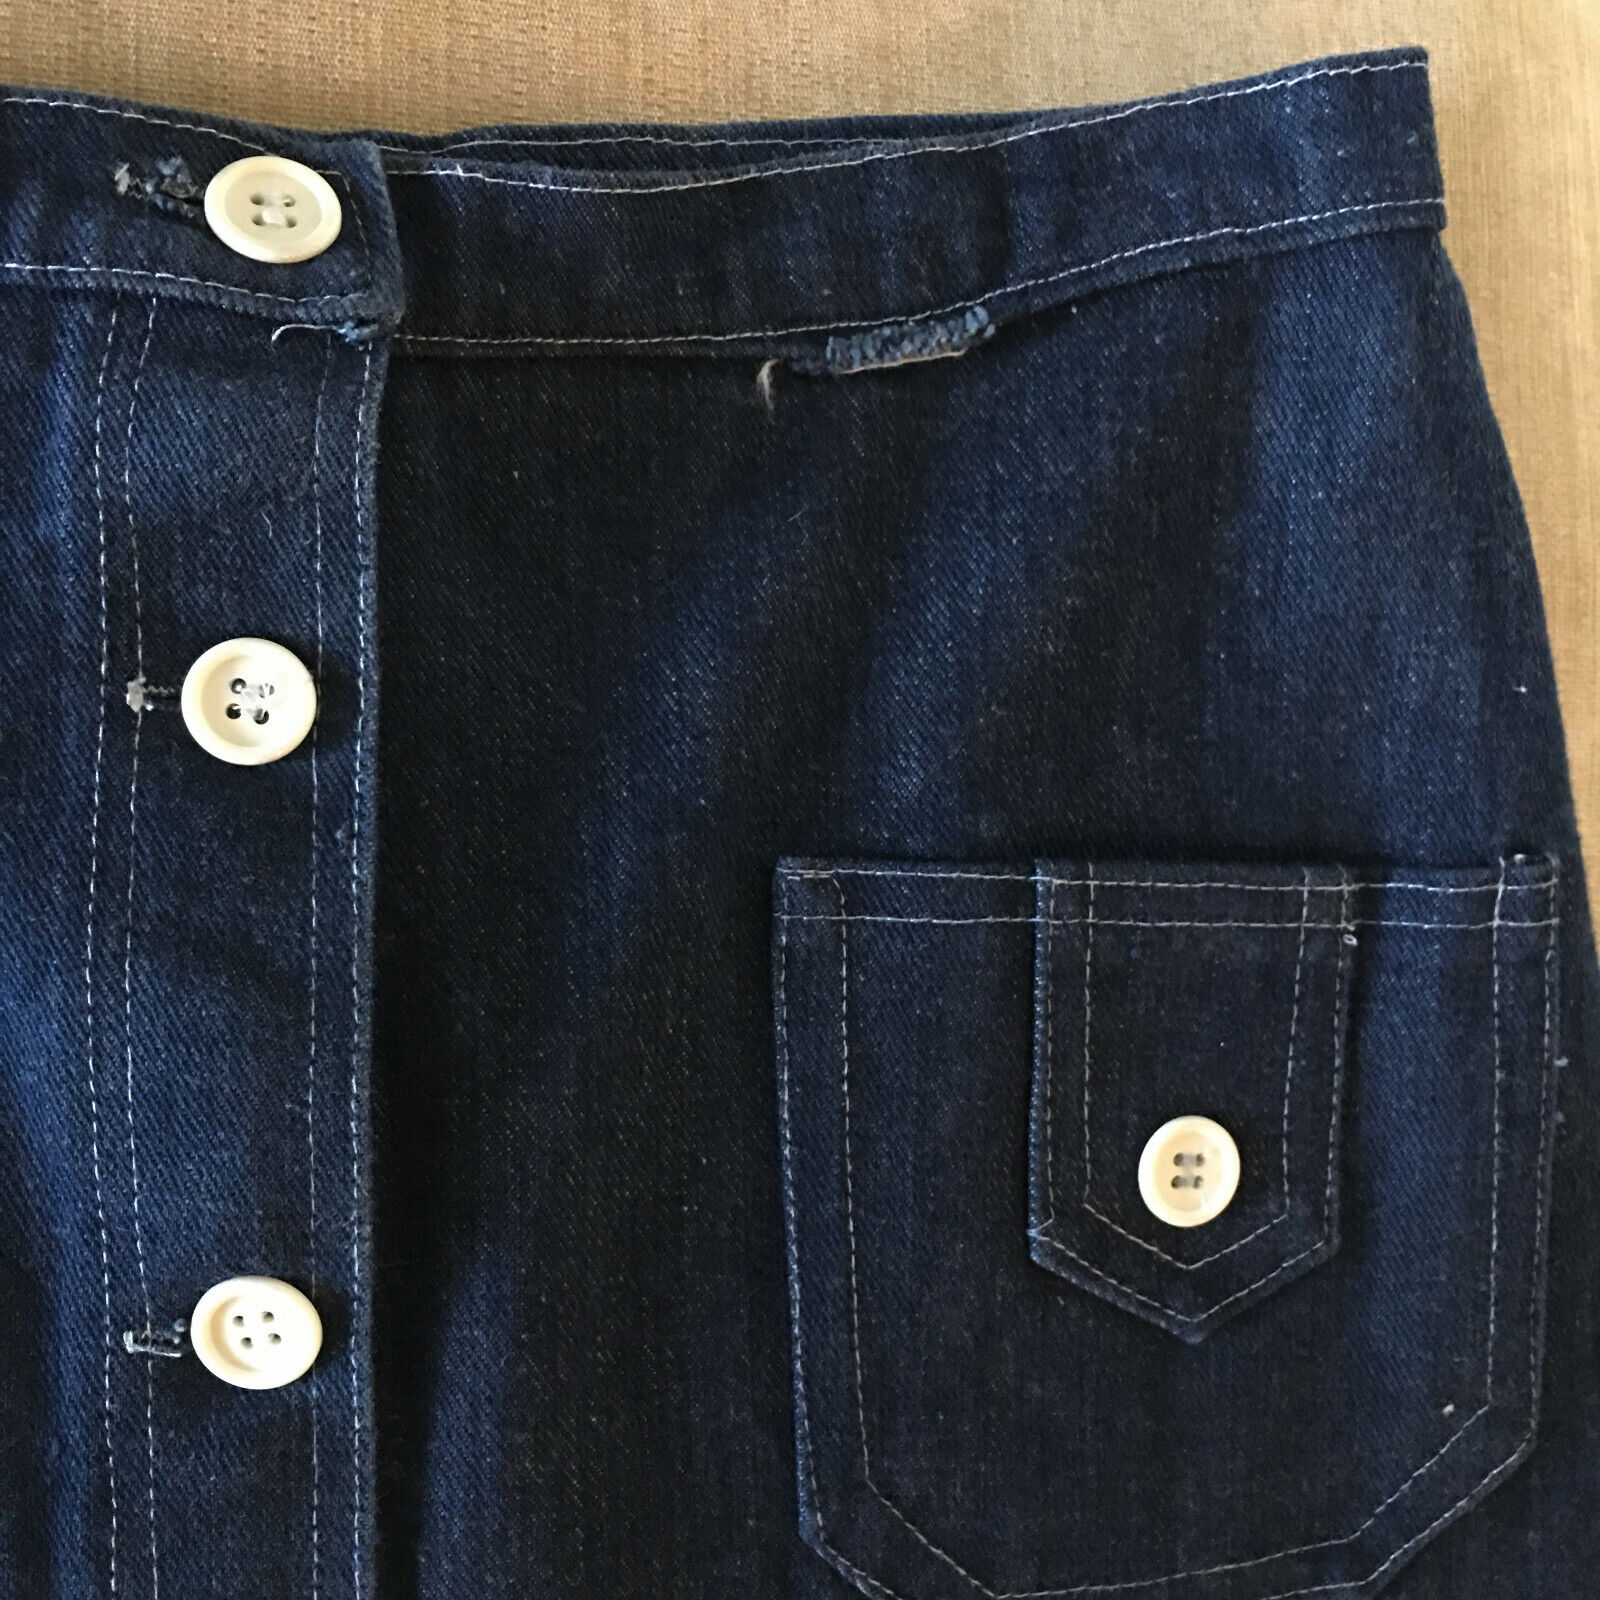 Peekaboo A-Line Vintage Inspired Denim Button Fro… - image 12